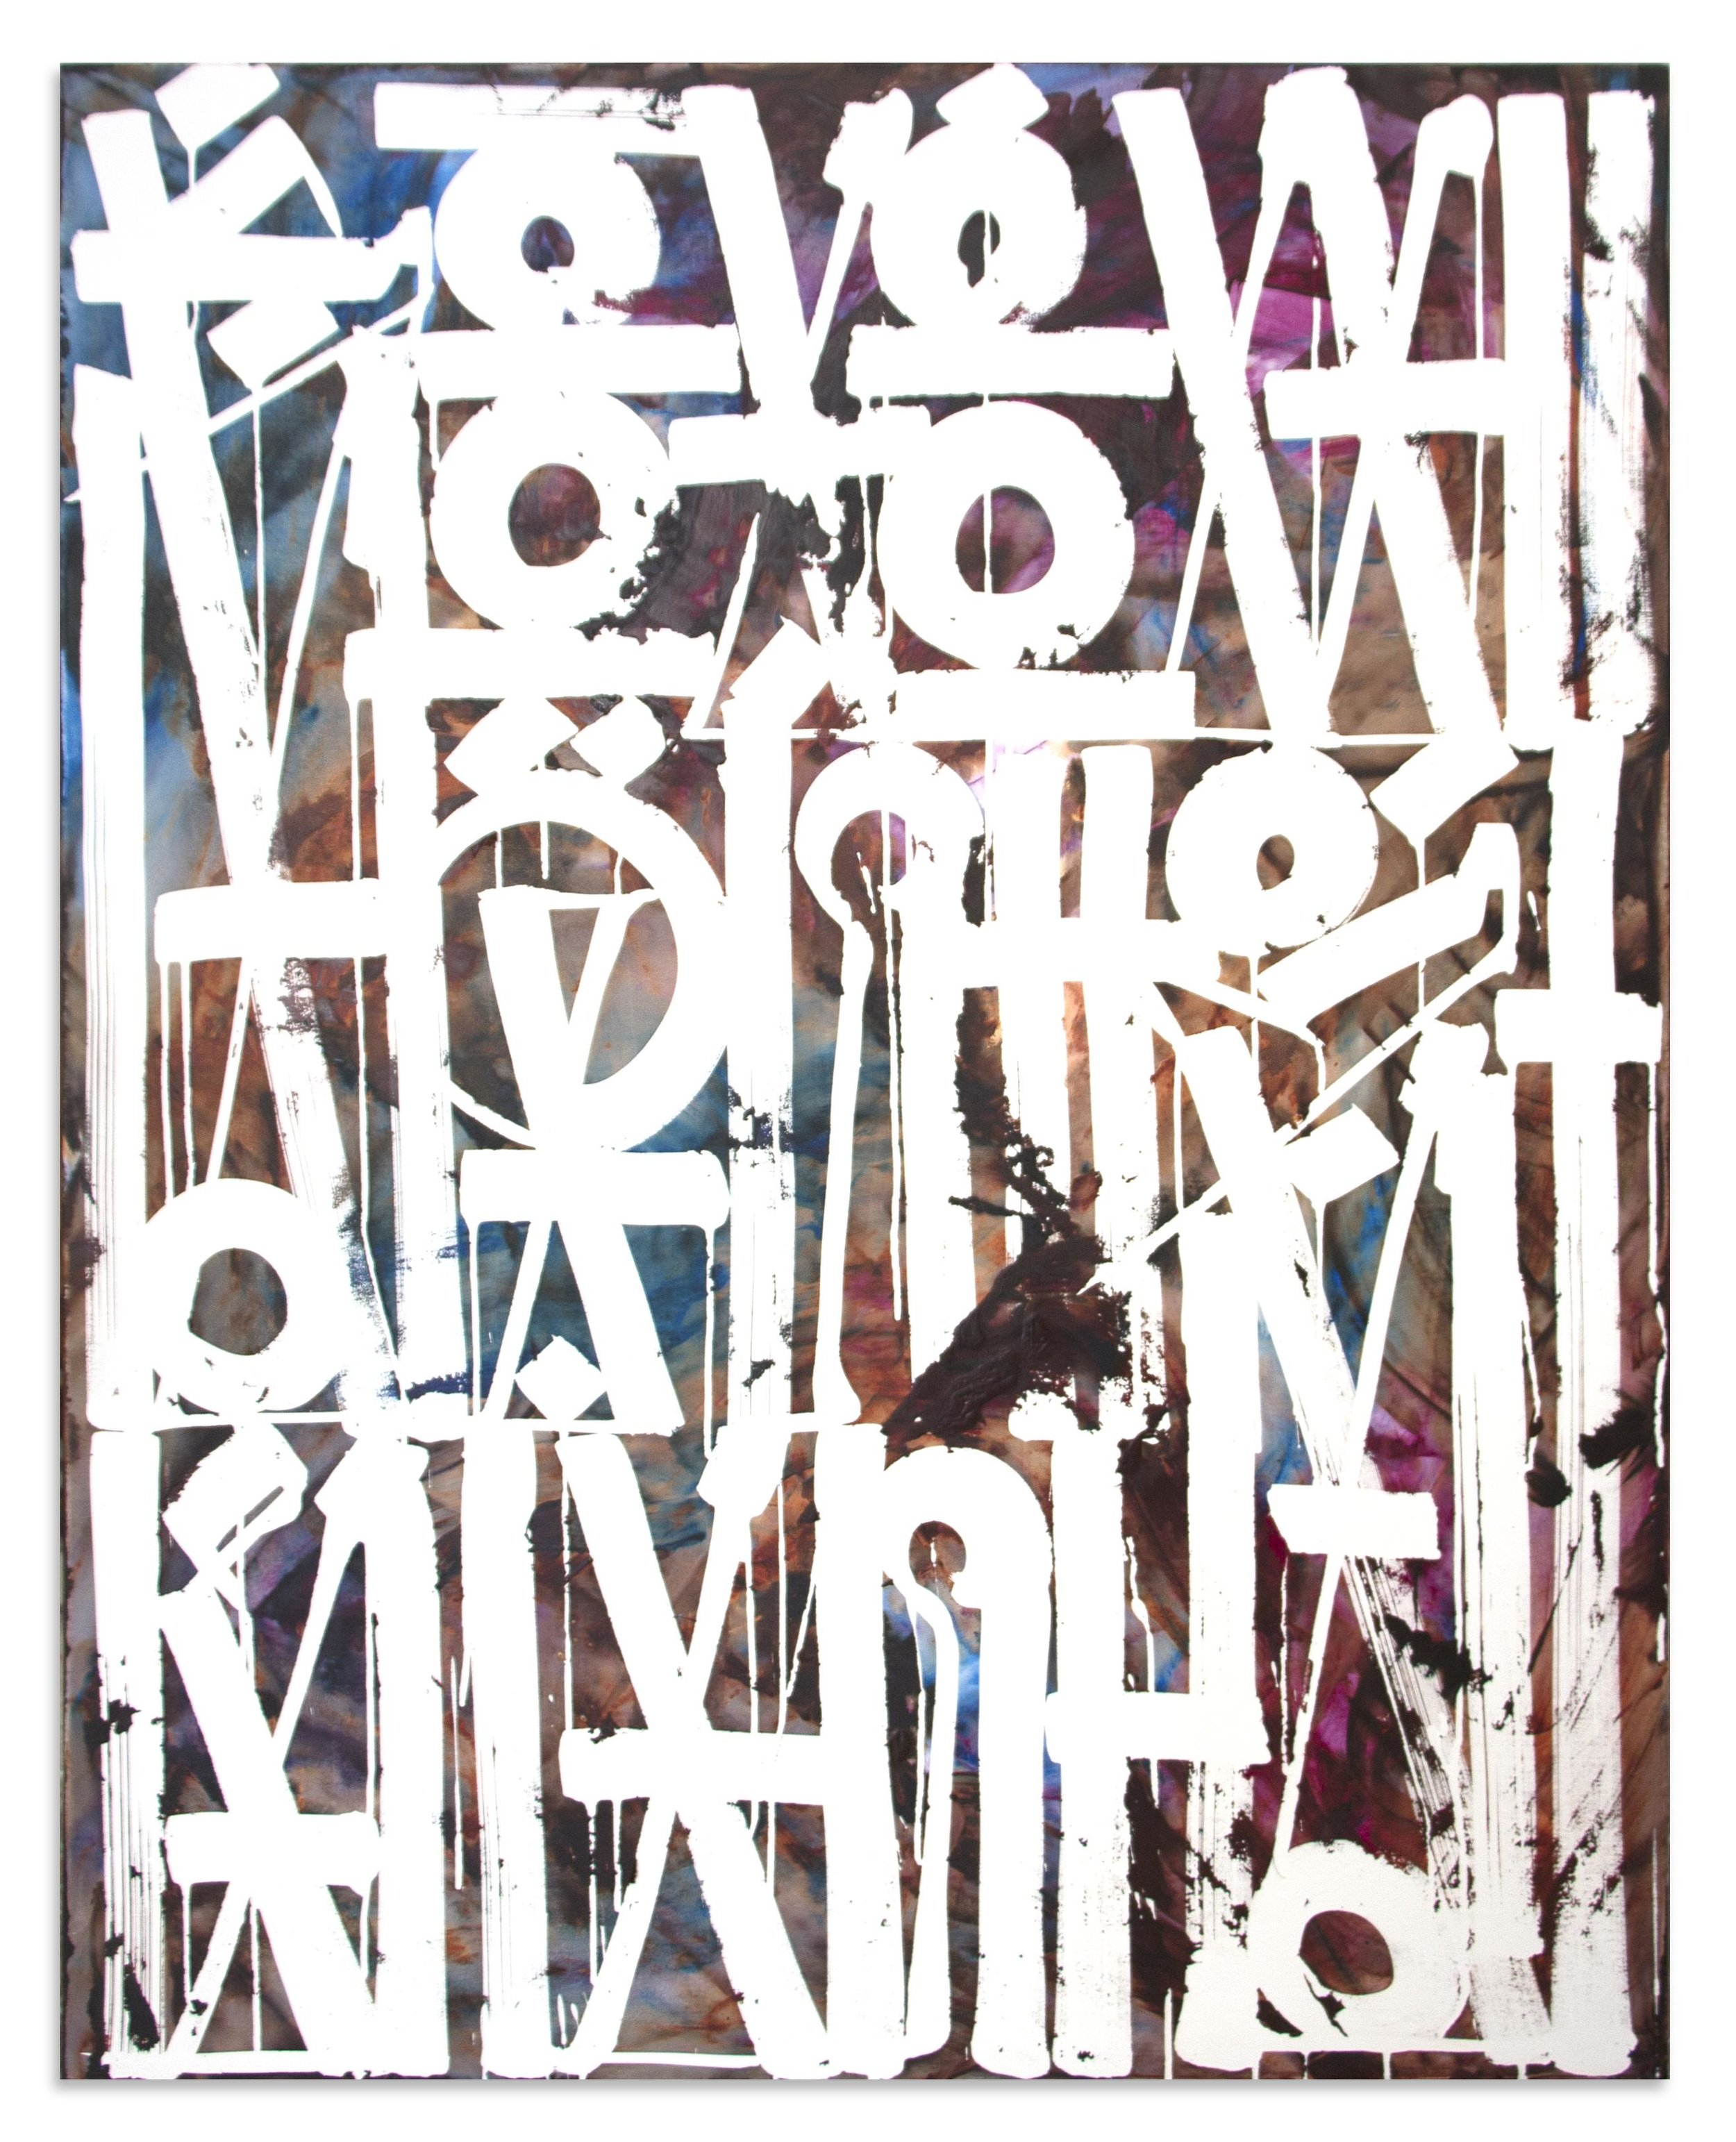 1463822784_RETNA-So_You_Wanted_To_Run-122x96-Acrylic_On_Canvas.jpg